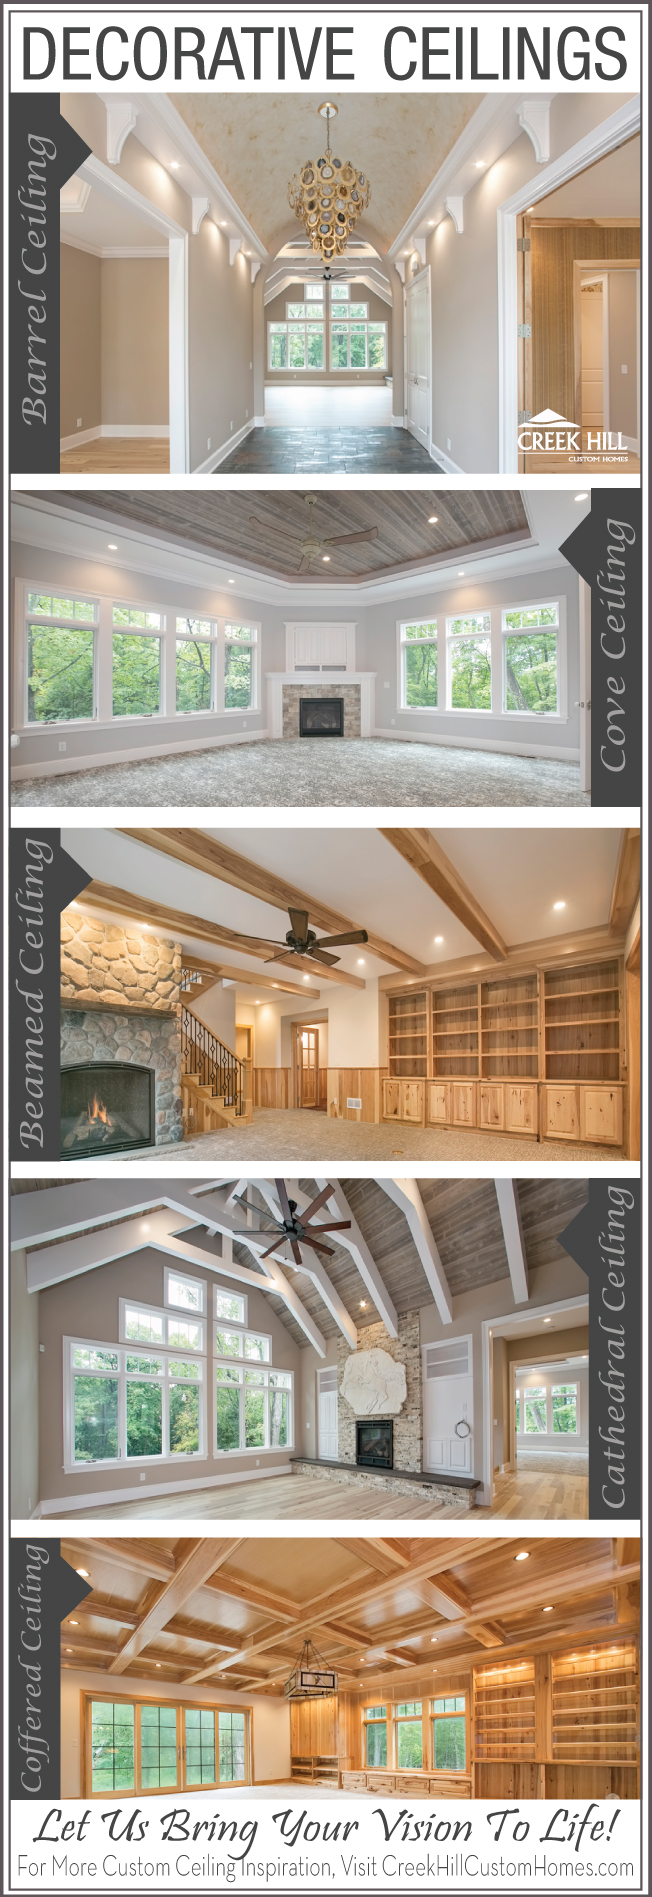 Decorative Ceiling Types | Creek Hill